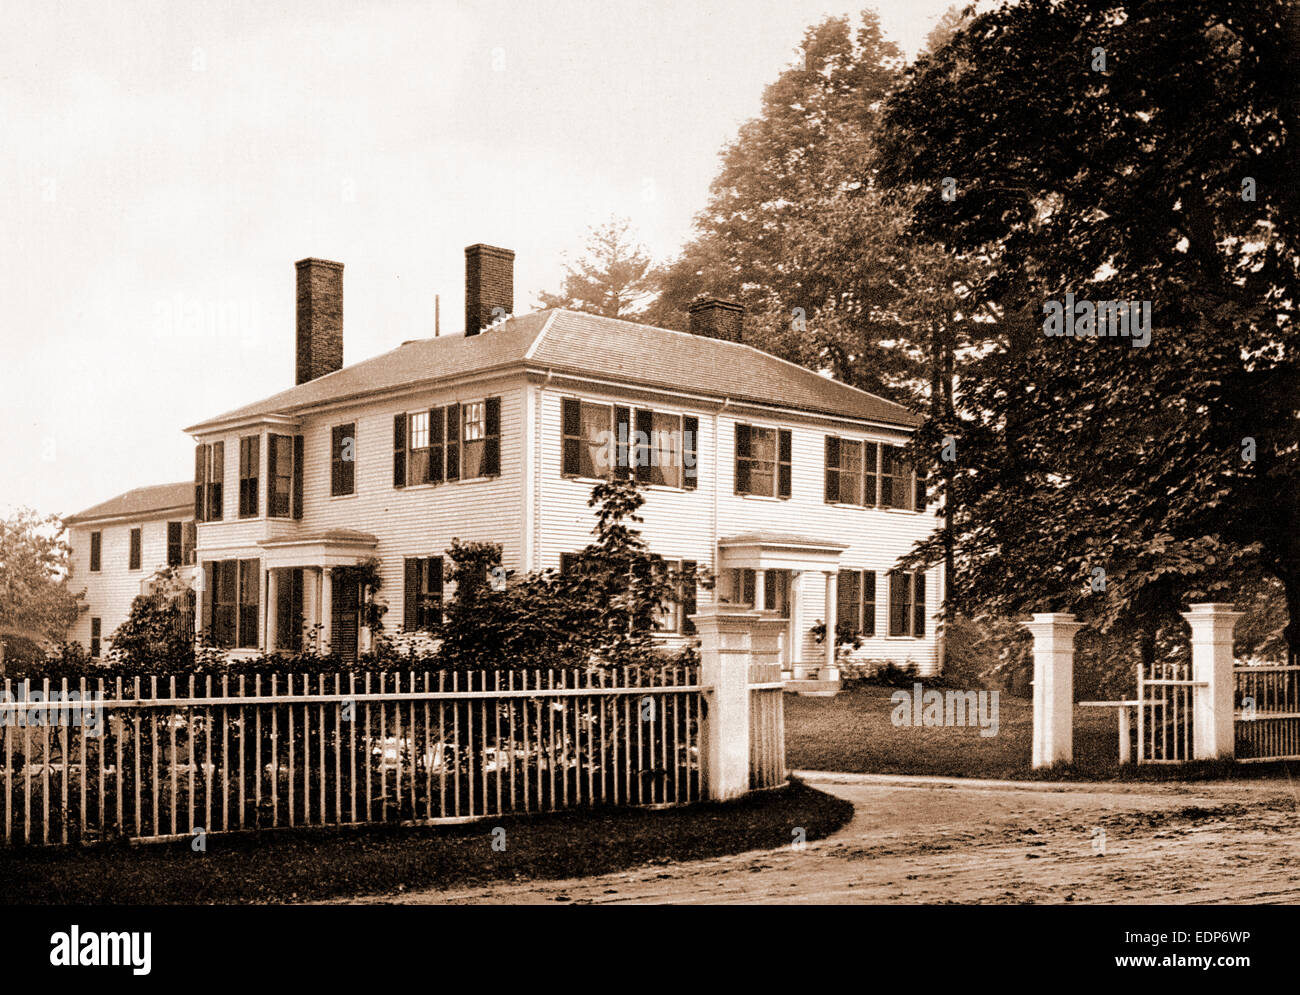 The Emerson House, Concord, Emerson House (Concord, Mass.), Dwellings, United States, Massachusetts, Concord, 1900 - Stock Image